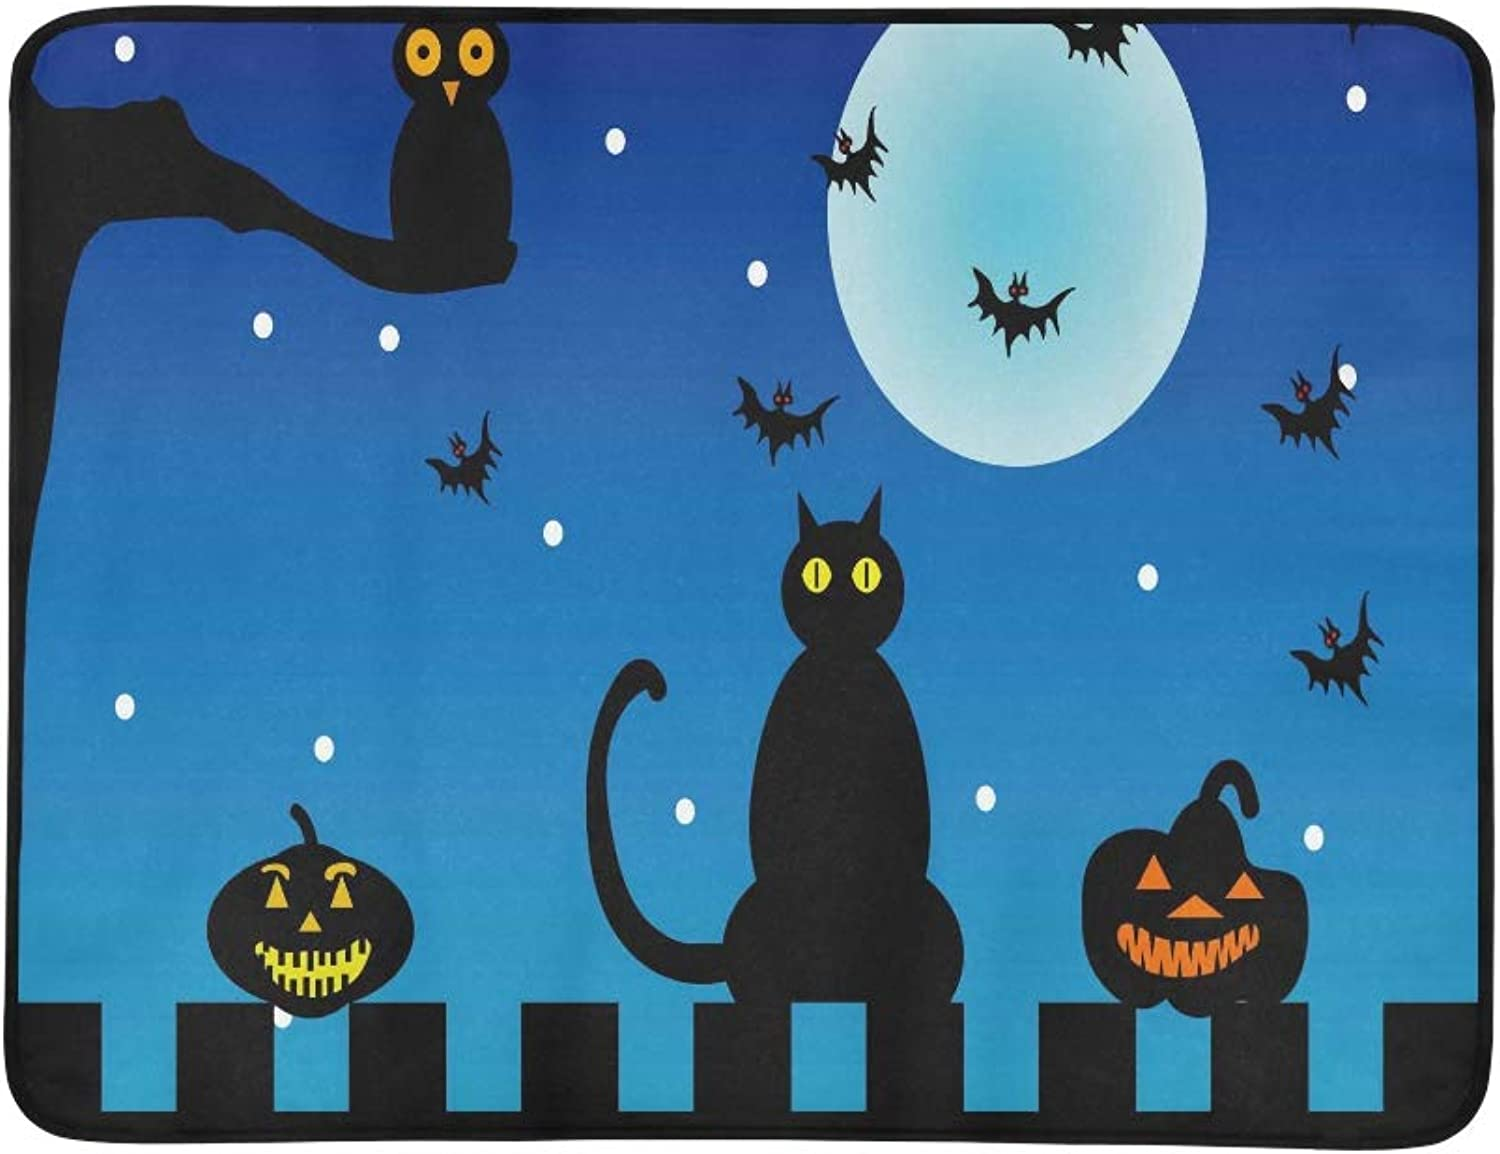 Cat Owl and Pumpkins in The Dark On Halloweenhall Pattern Portable and Foldable Blanket Mat 60x78 Inch Handy Mat for Camping Picnic Beach Indoor Outdoor Travel